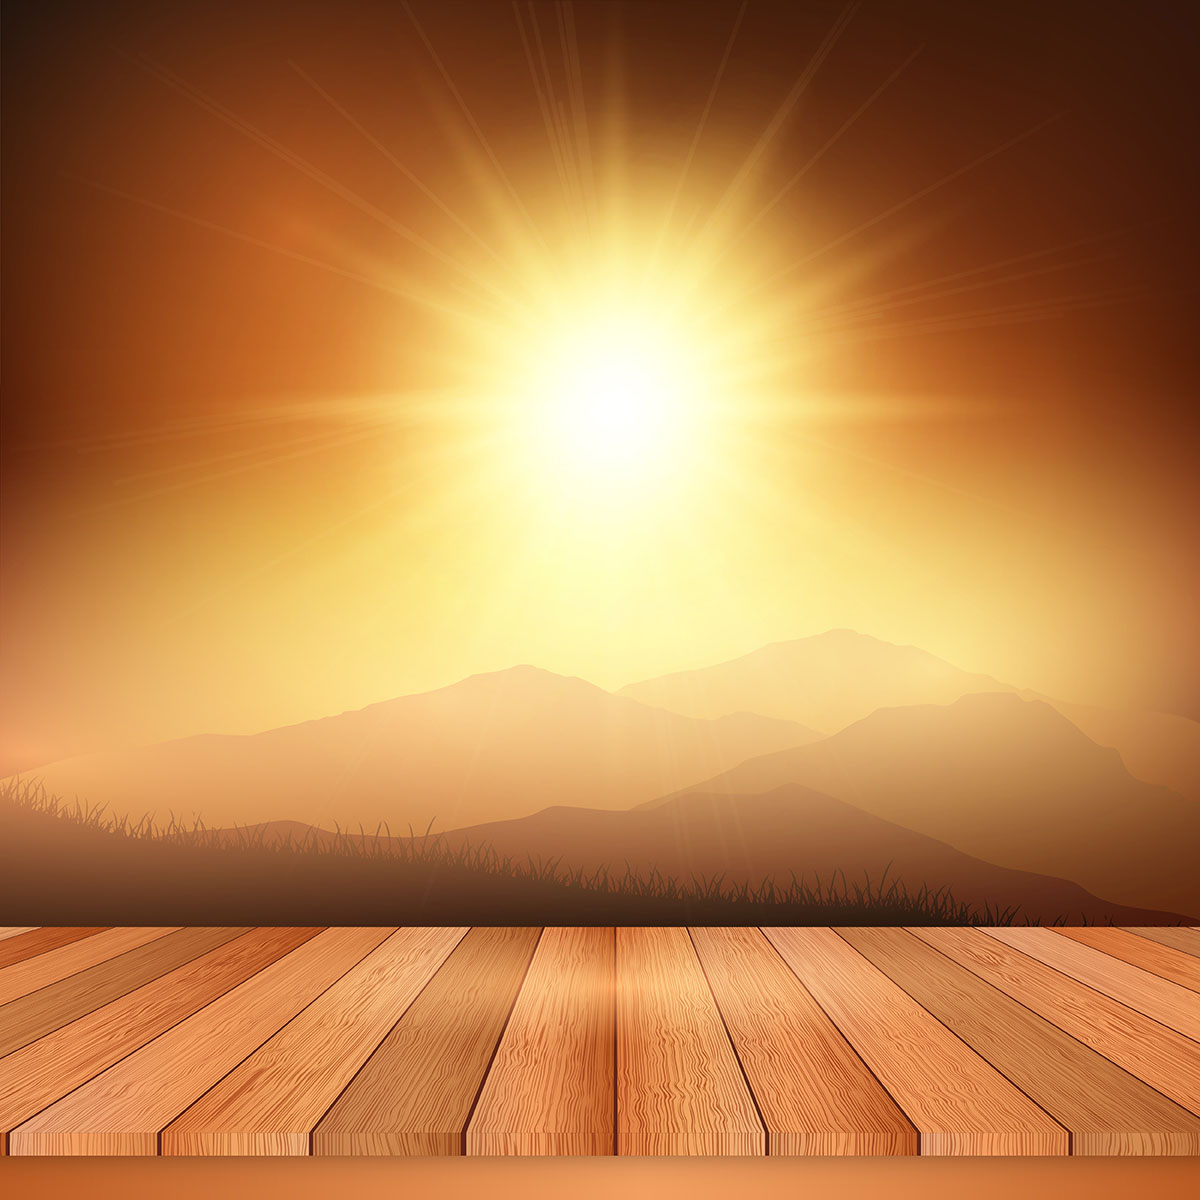 Wooden Table Looking Out To Sunny Landscape Download